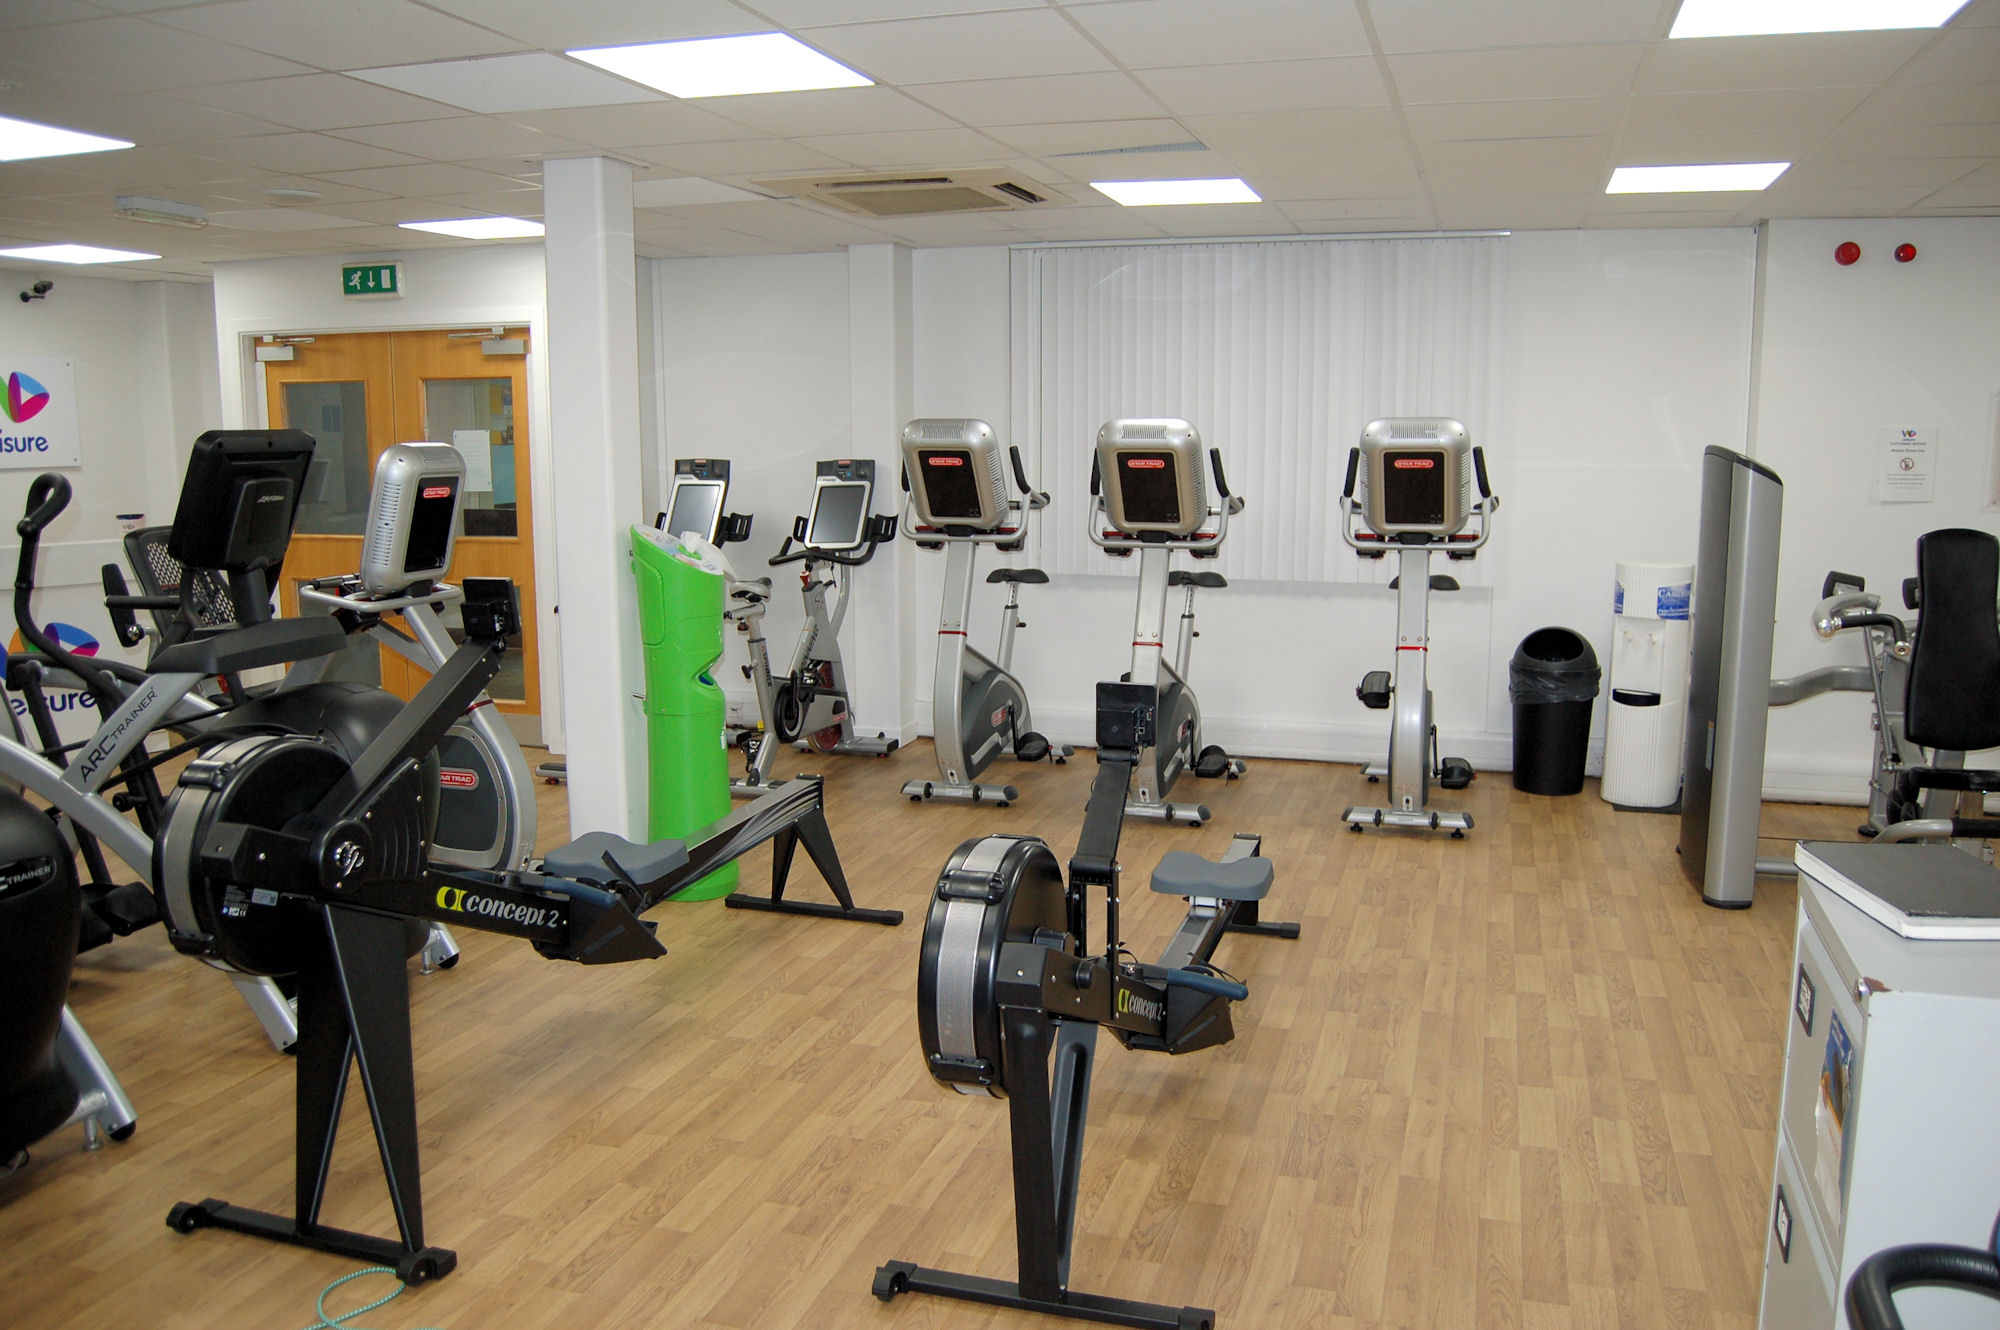 image of Fitness bikes